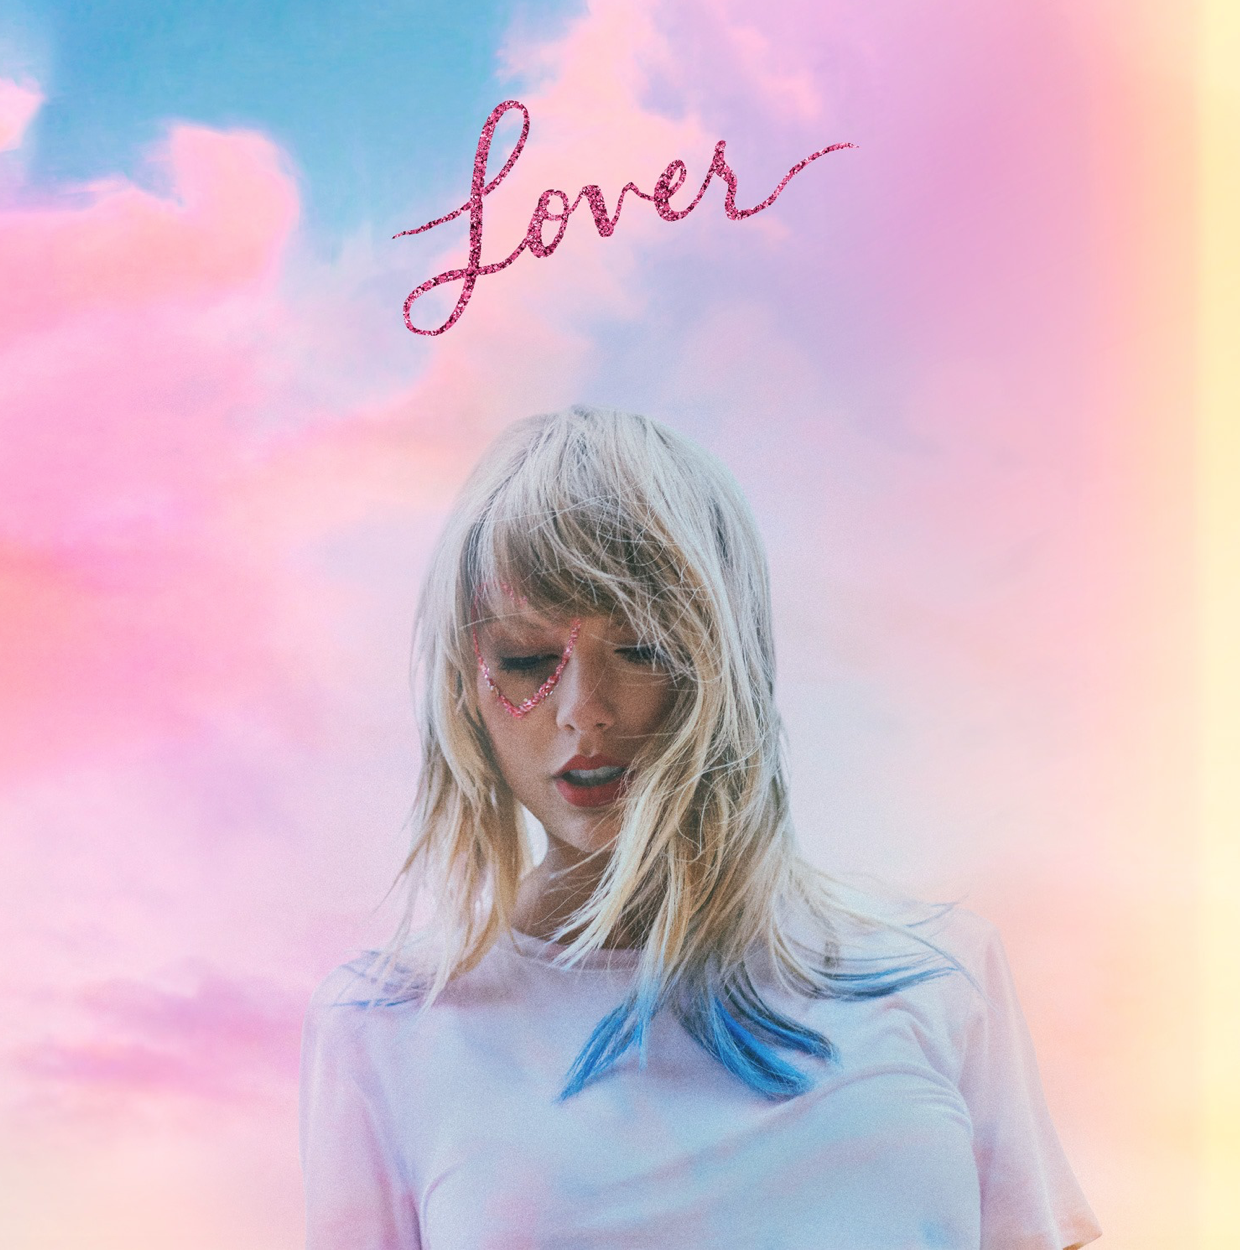 taylor swift lover album cover.png